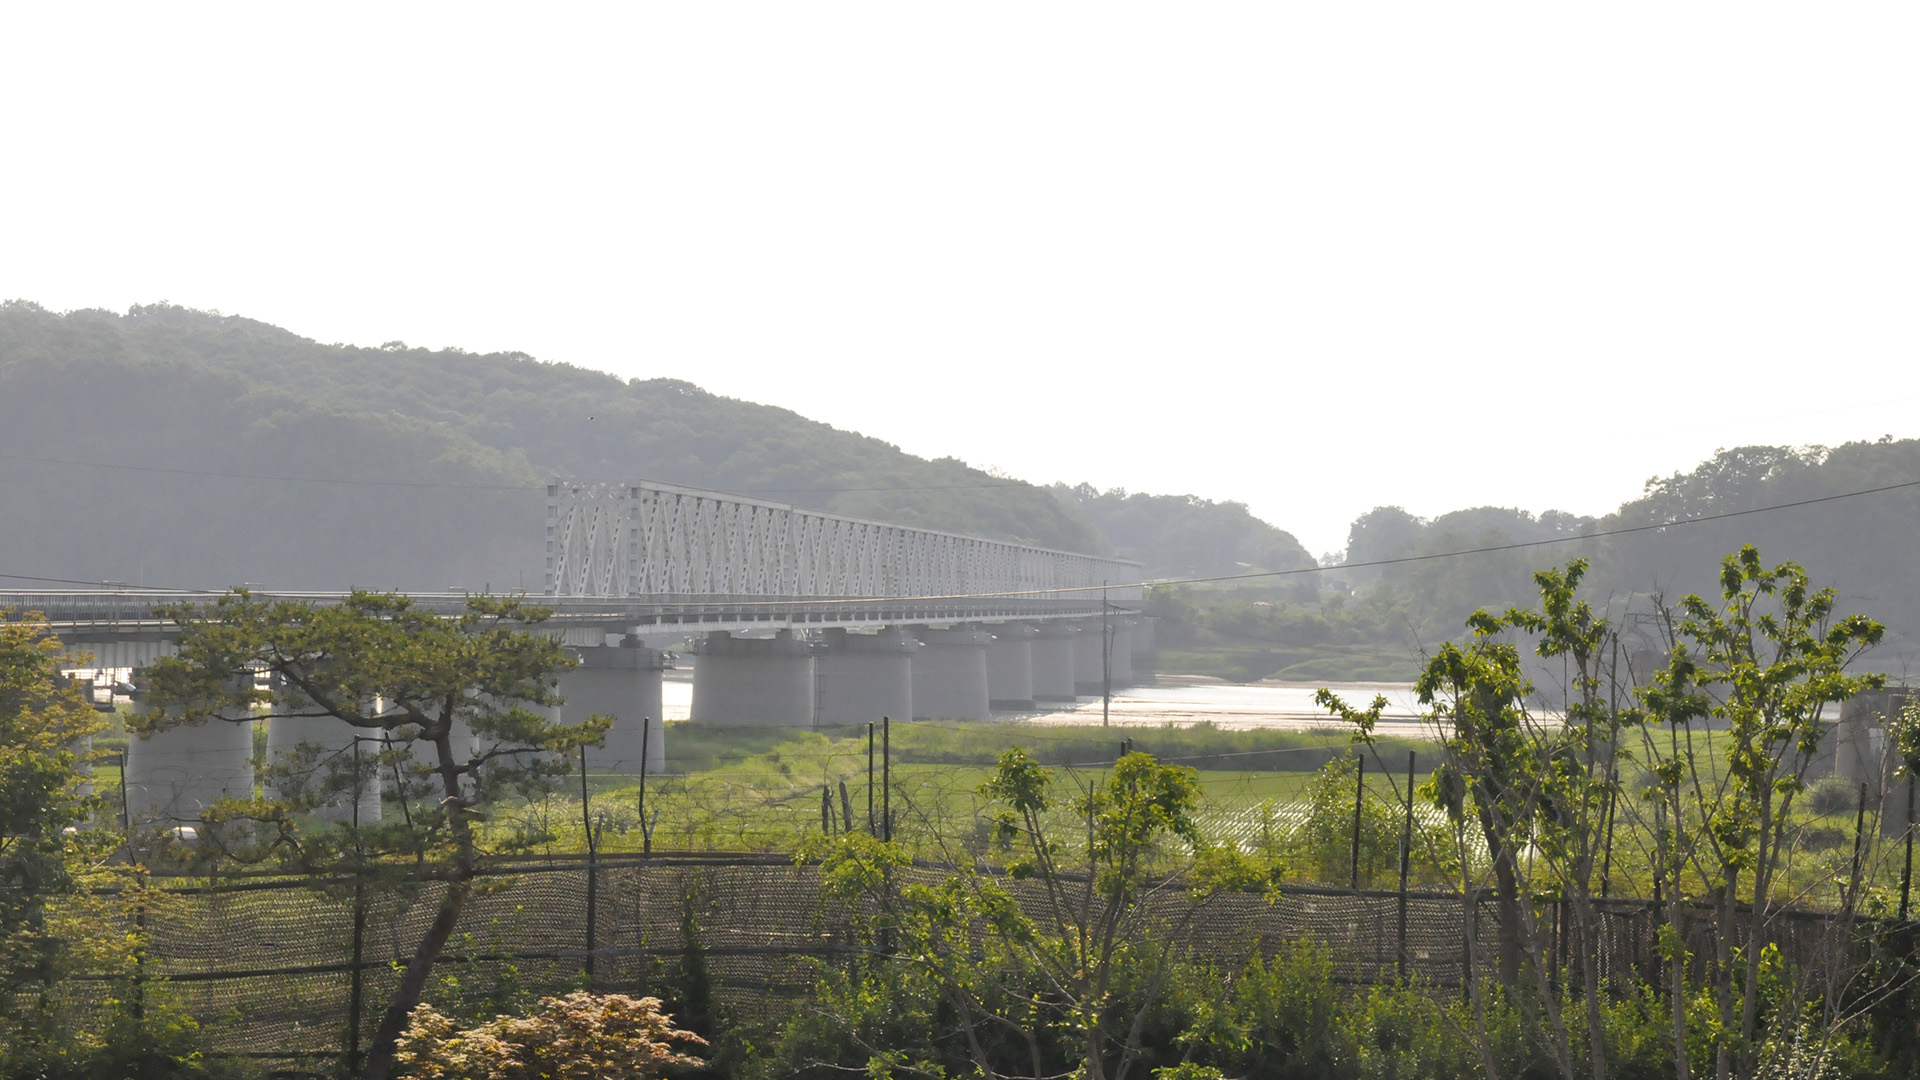 Imjingak Railroad Bridge